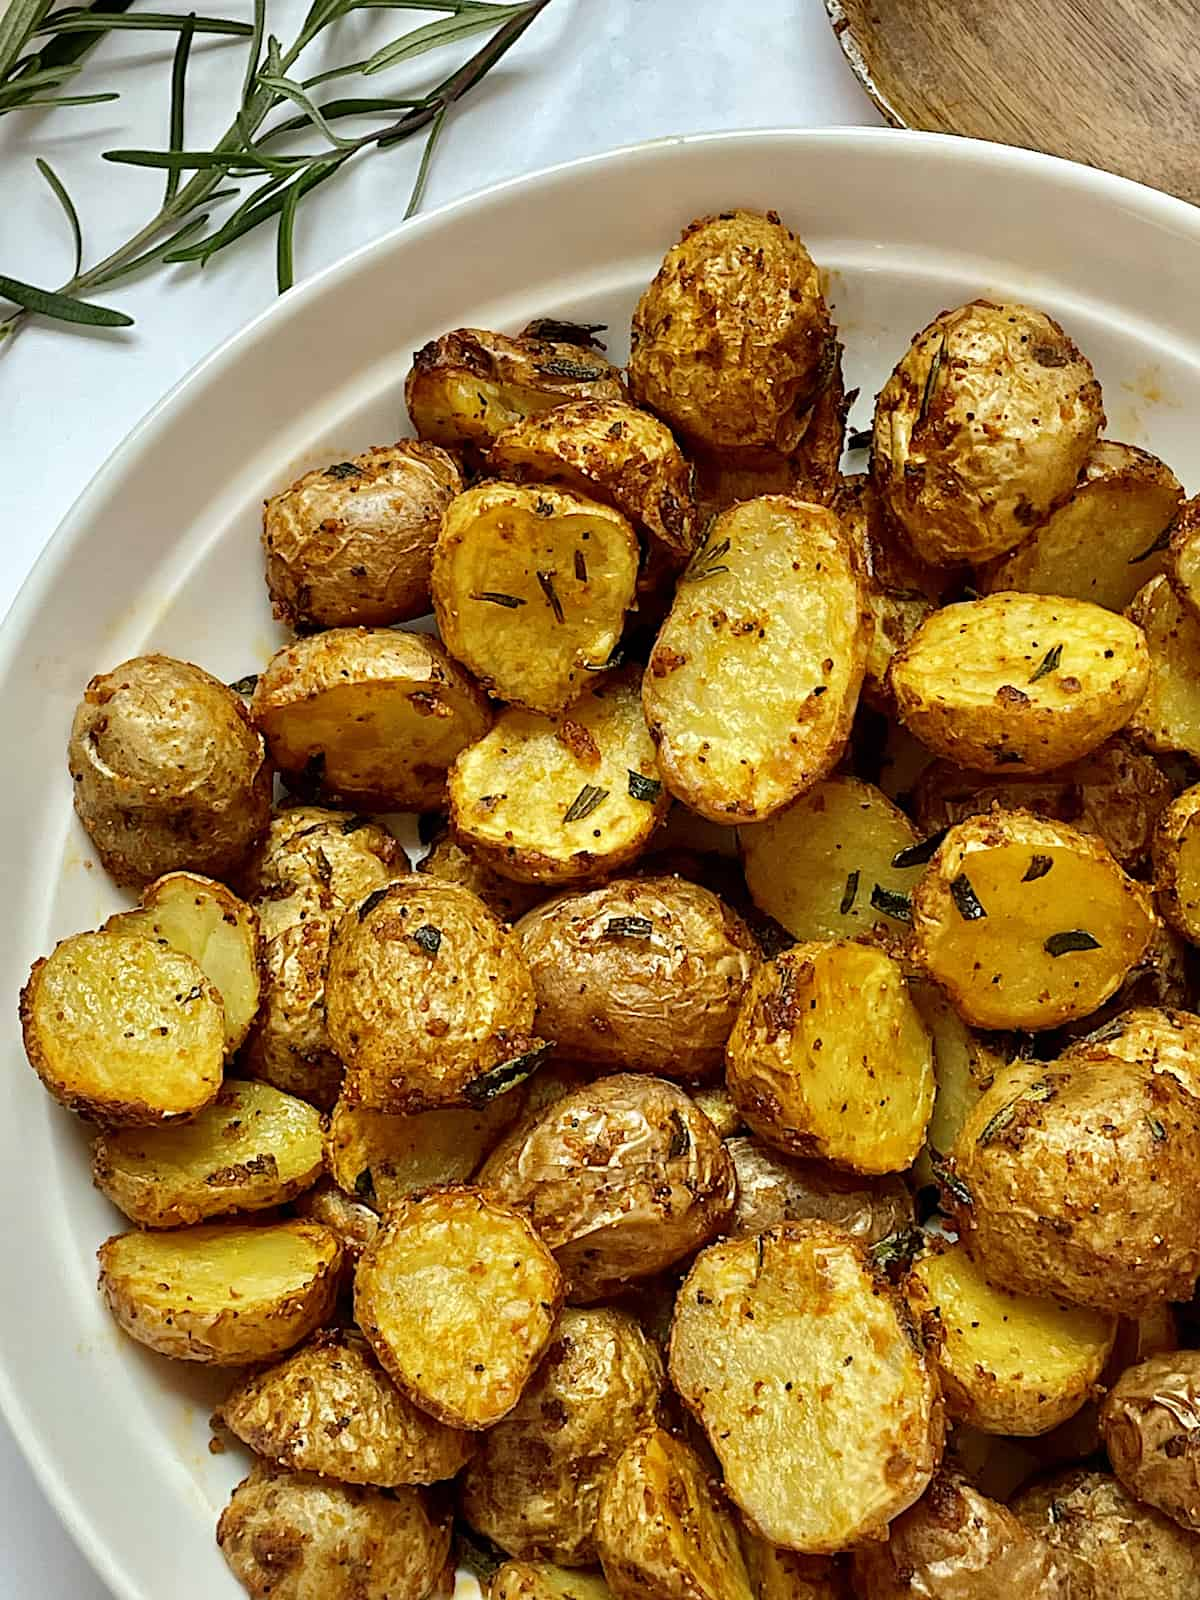 air fryer baby potatoes with spices and rosemary in a white plate